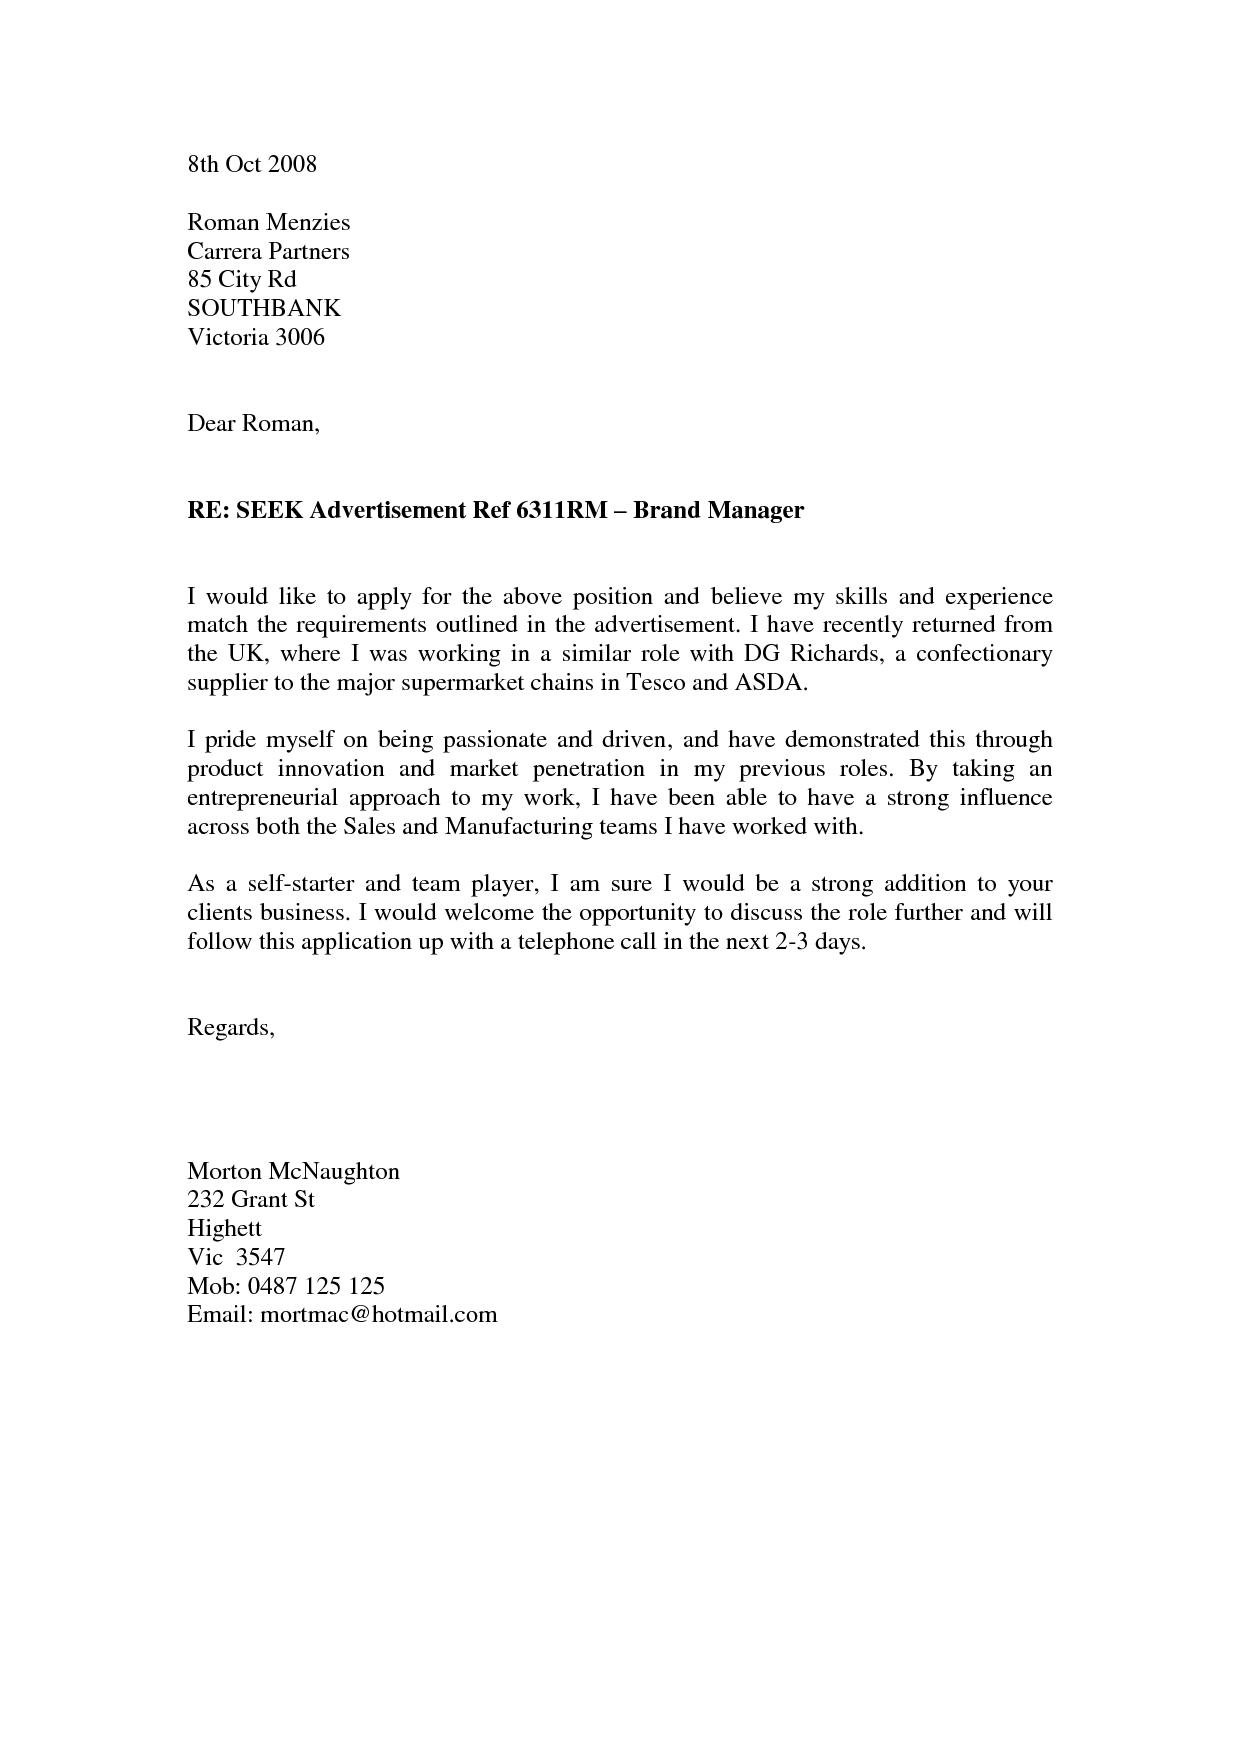 Support Worker Cover Letter With No Experience June 2021